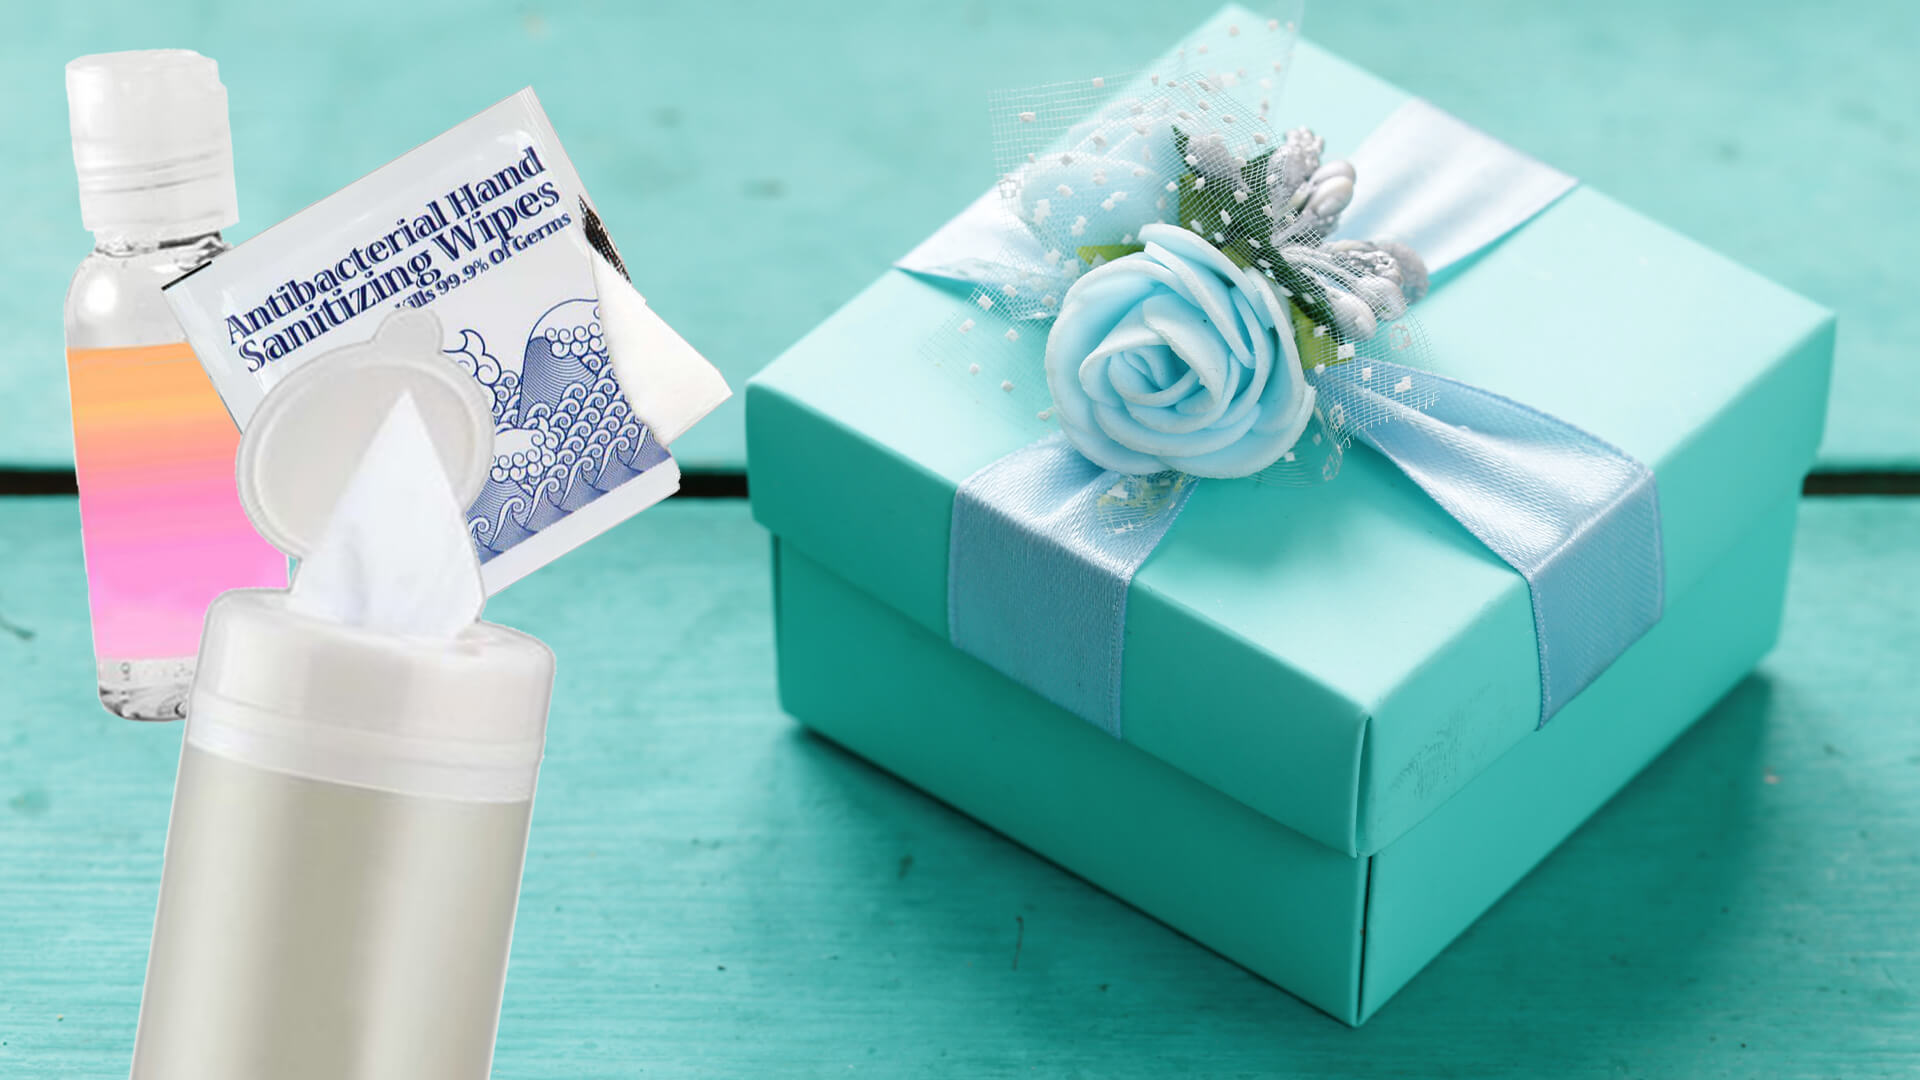 Pandemic_Wedding_Checklist_Gifts_For_Guests